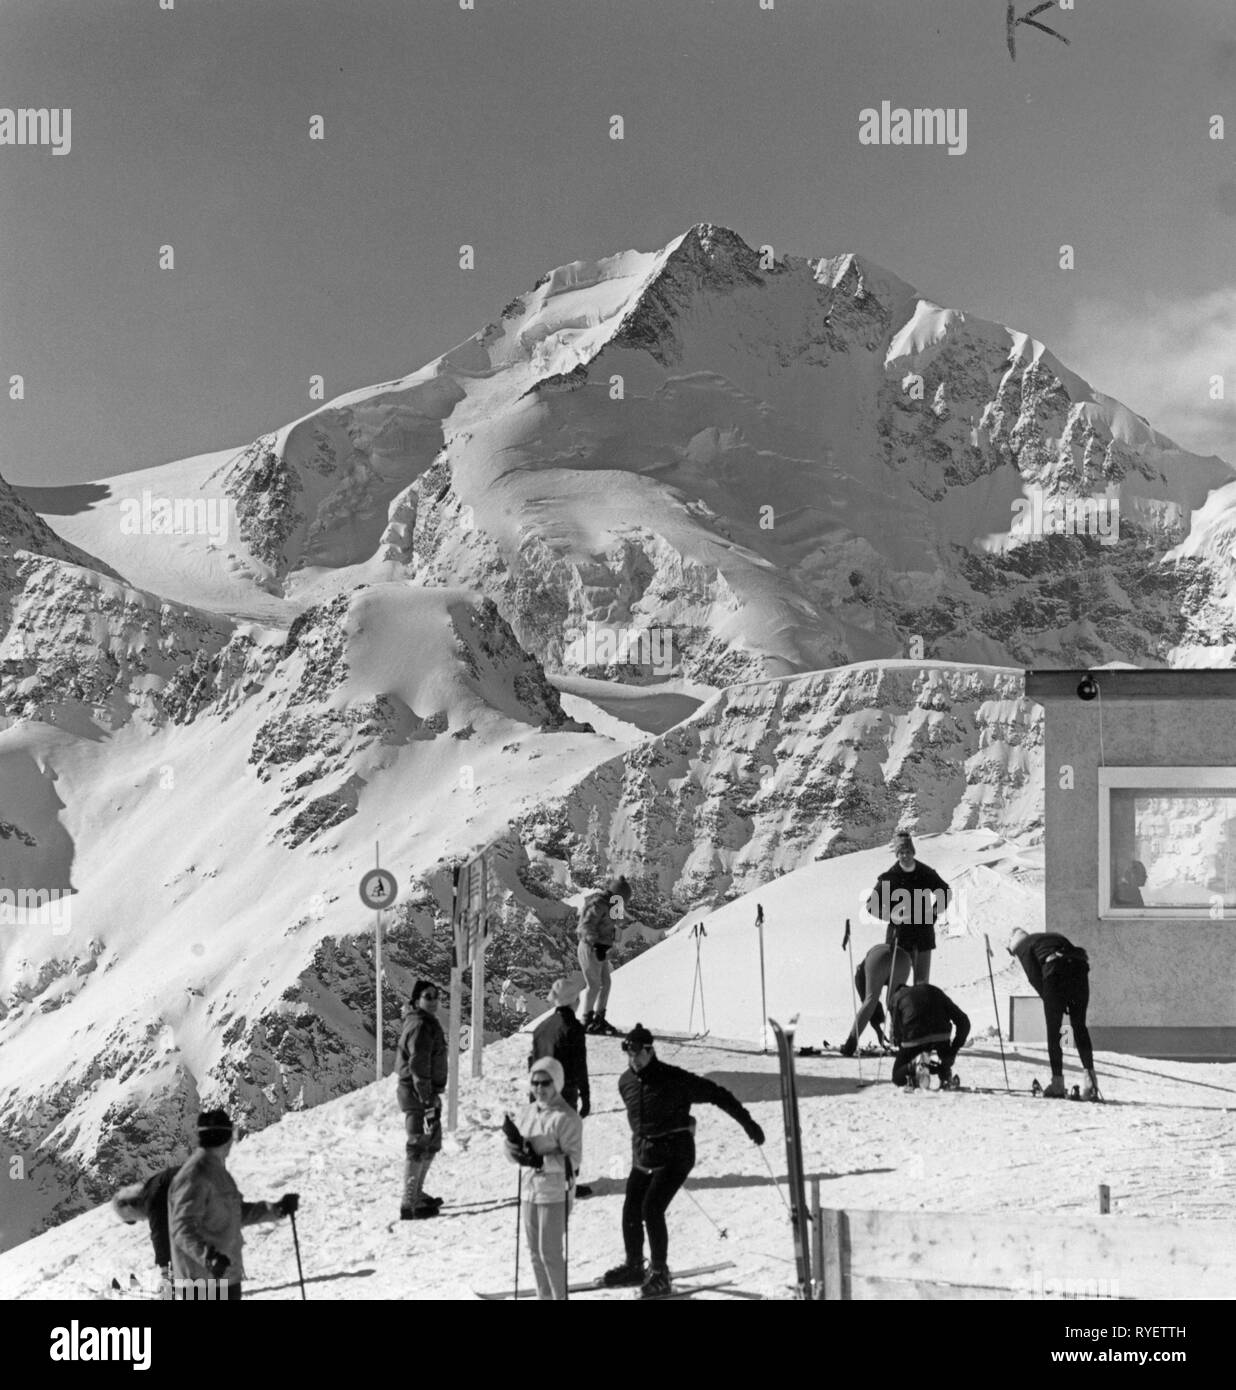 sports, winter sports, skiing, skiers at mountain top station, Pontresina, Upper Engadine, Switzerland, 1960s, Additional-Rights-Clearance-Info-Not-Available Stock Photo